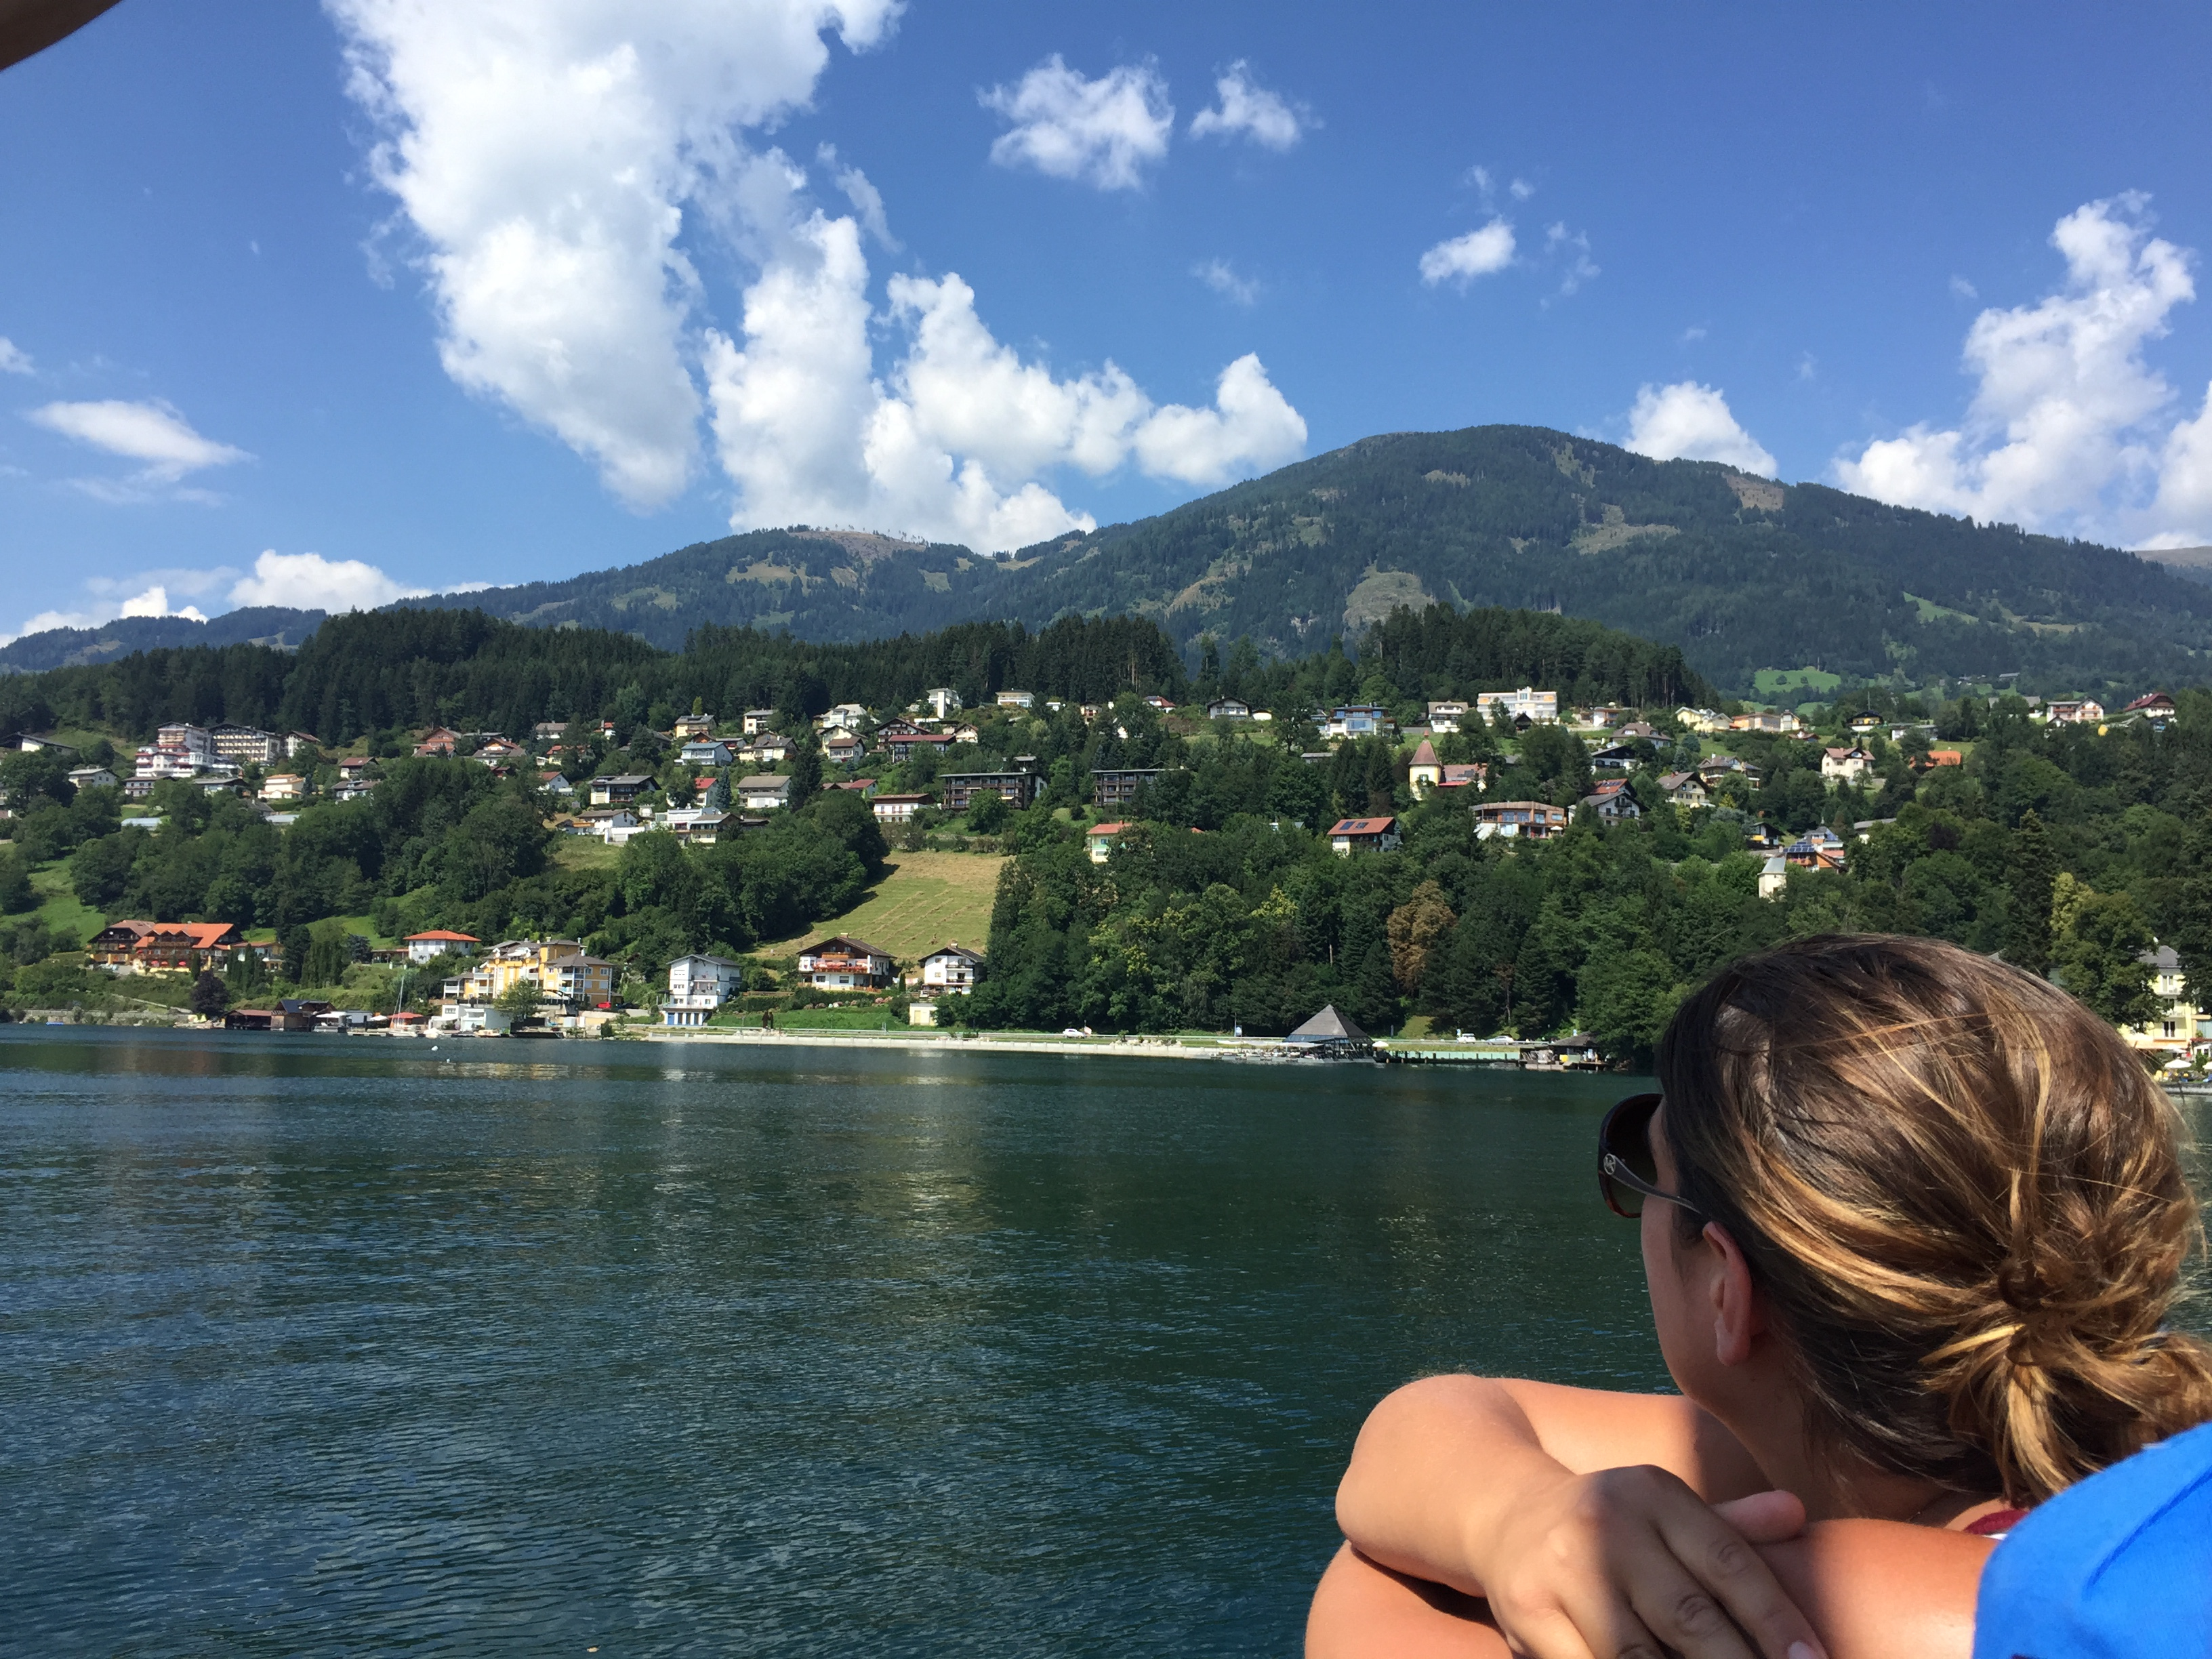 Looking out over Millstatt